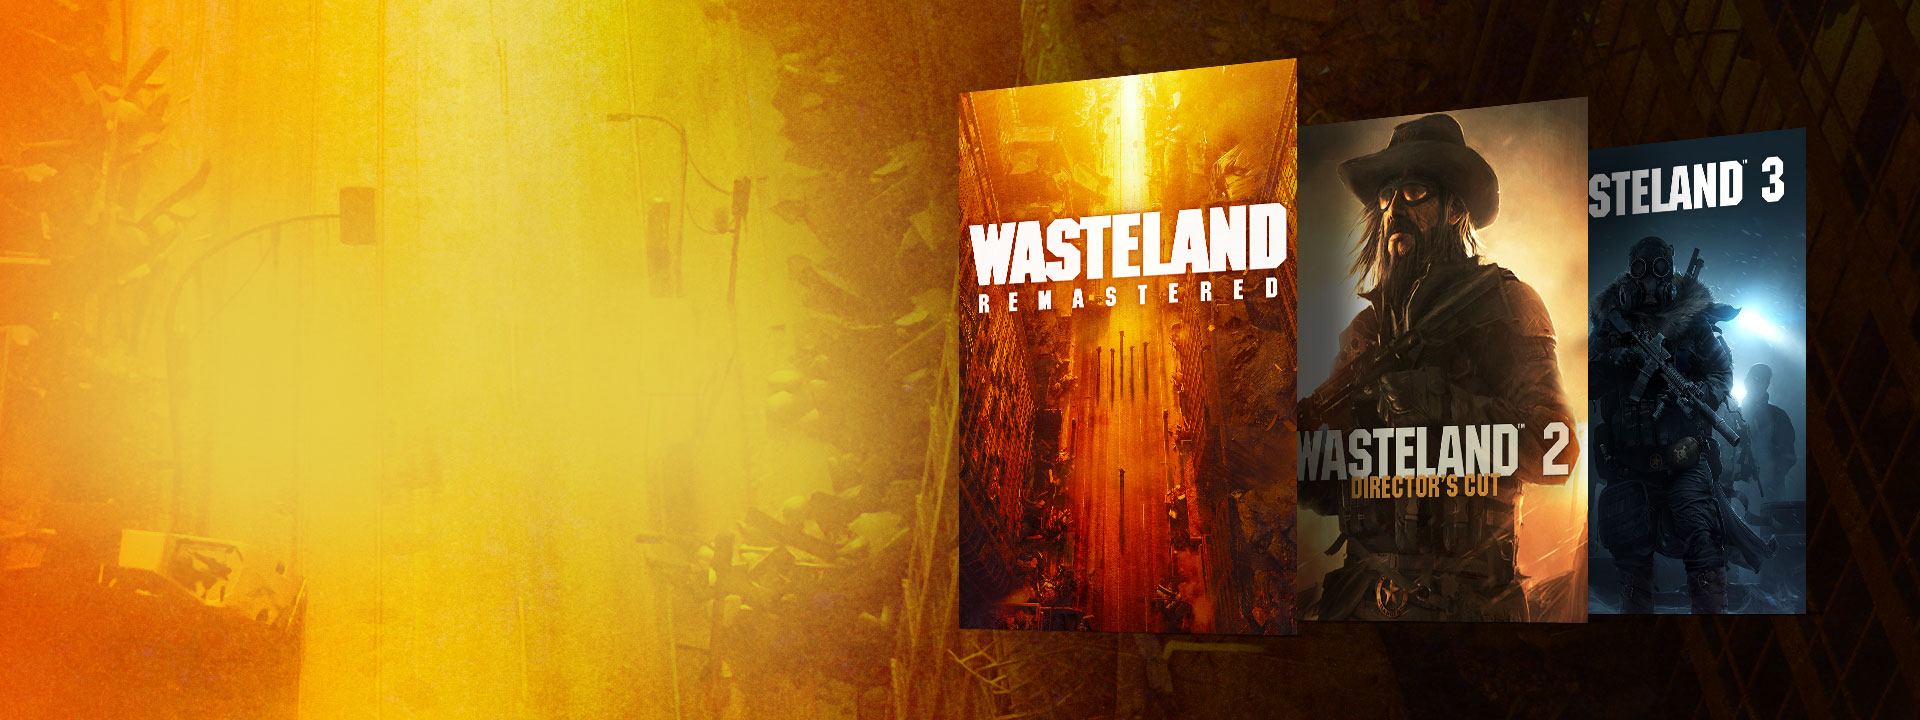 Boxshots of Wasteland Remastered, Wasteland 2 Director's Cut, and Wasteland 3. A background of an abandoned street with yellow and orange hues